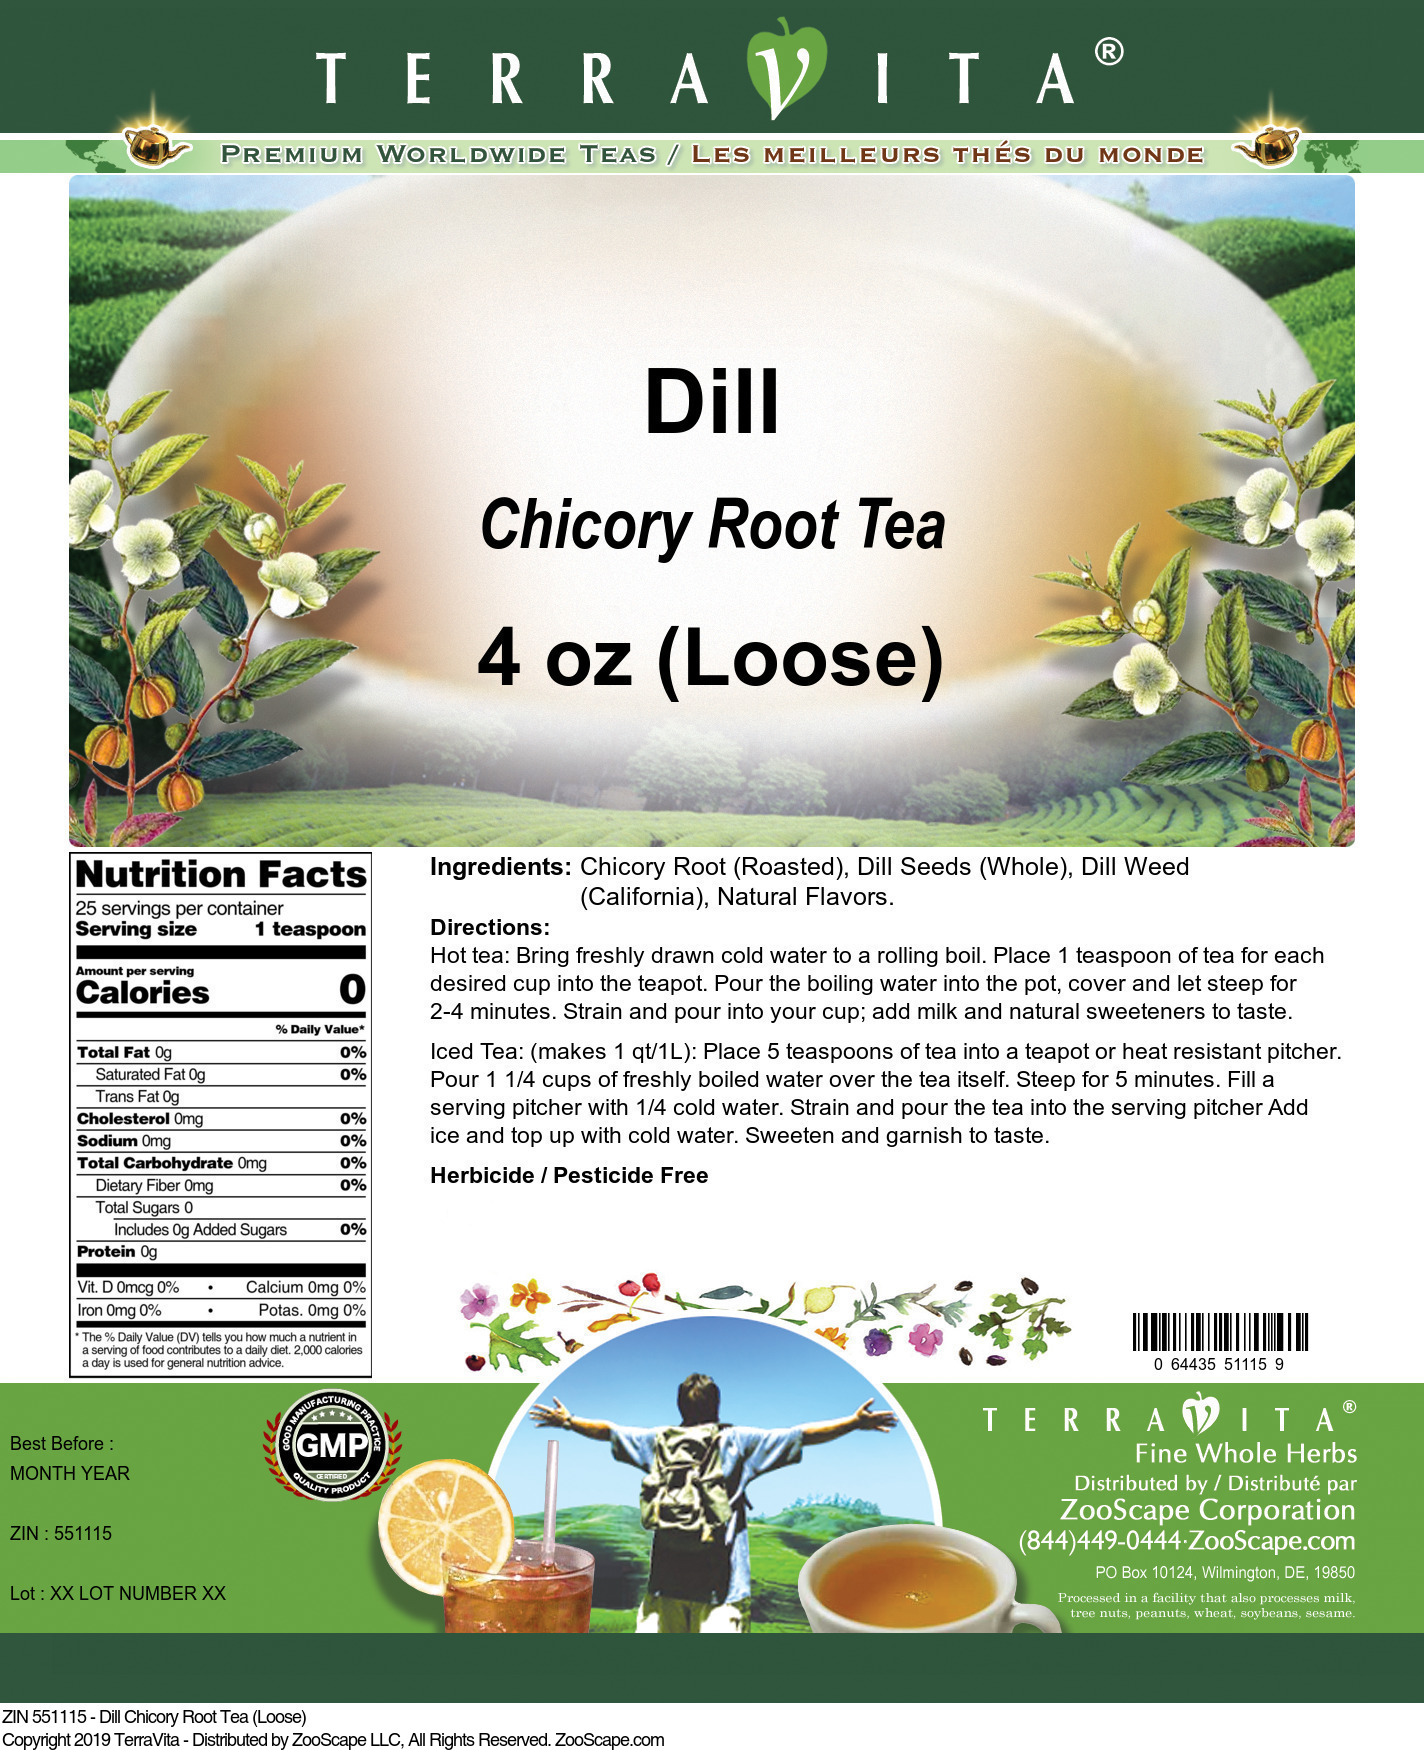 Dill Chicory Root Tea (Loose)